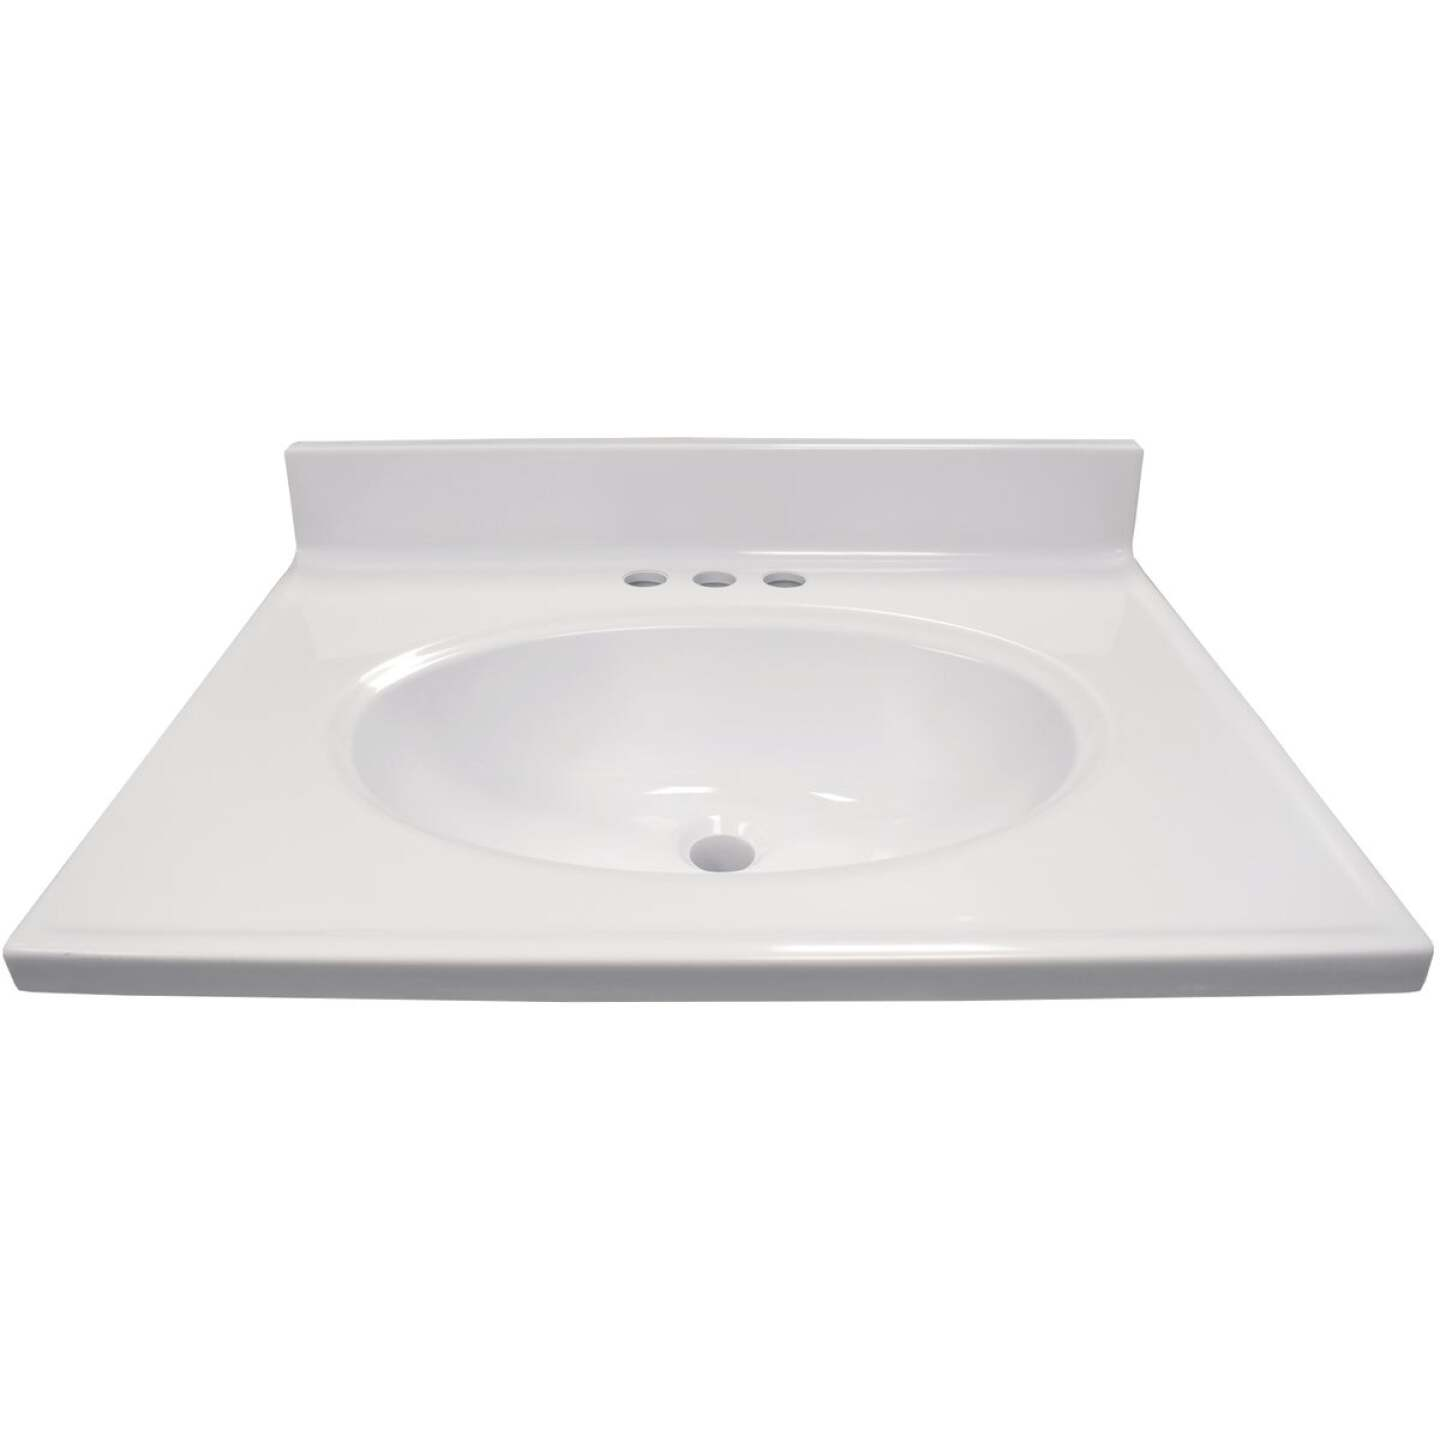 Modular Vanity Tops 25 In. W x 19 In. D Solid White Cultured Marble Vanity Top with Oval Bowl Image 1